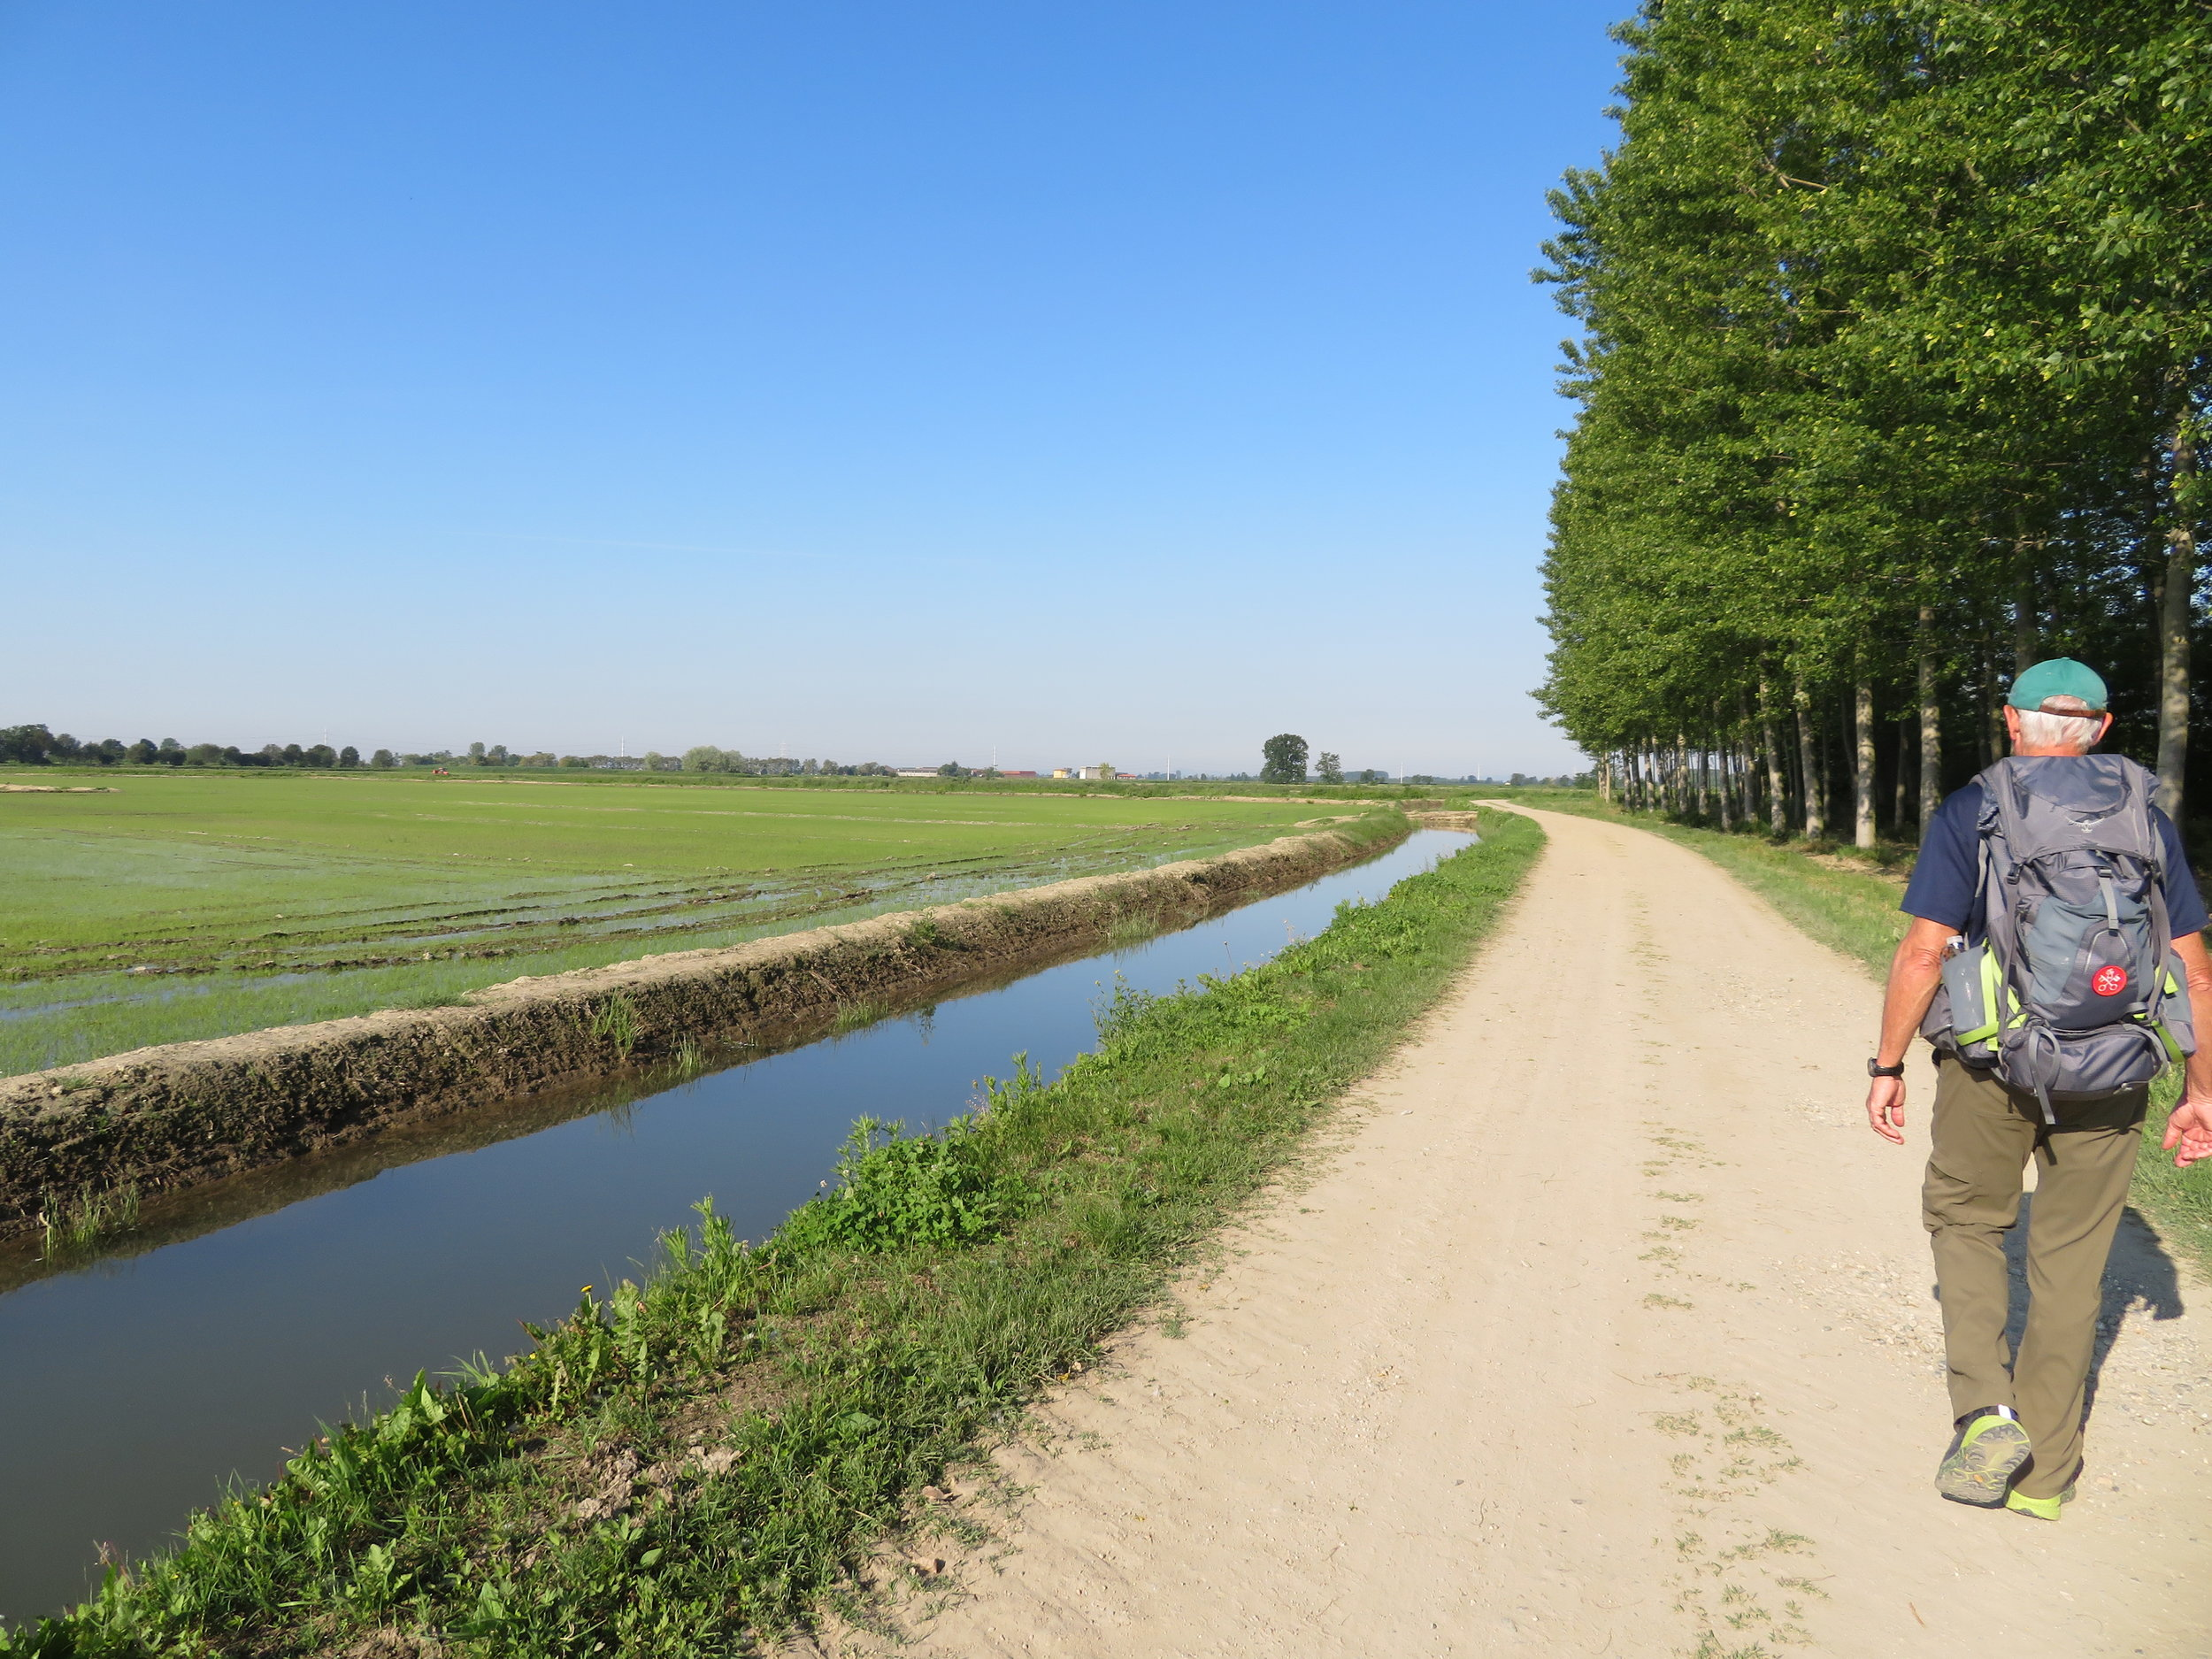 Walking along the irrigation canals and rice fields